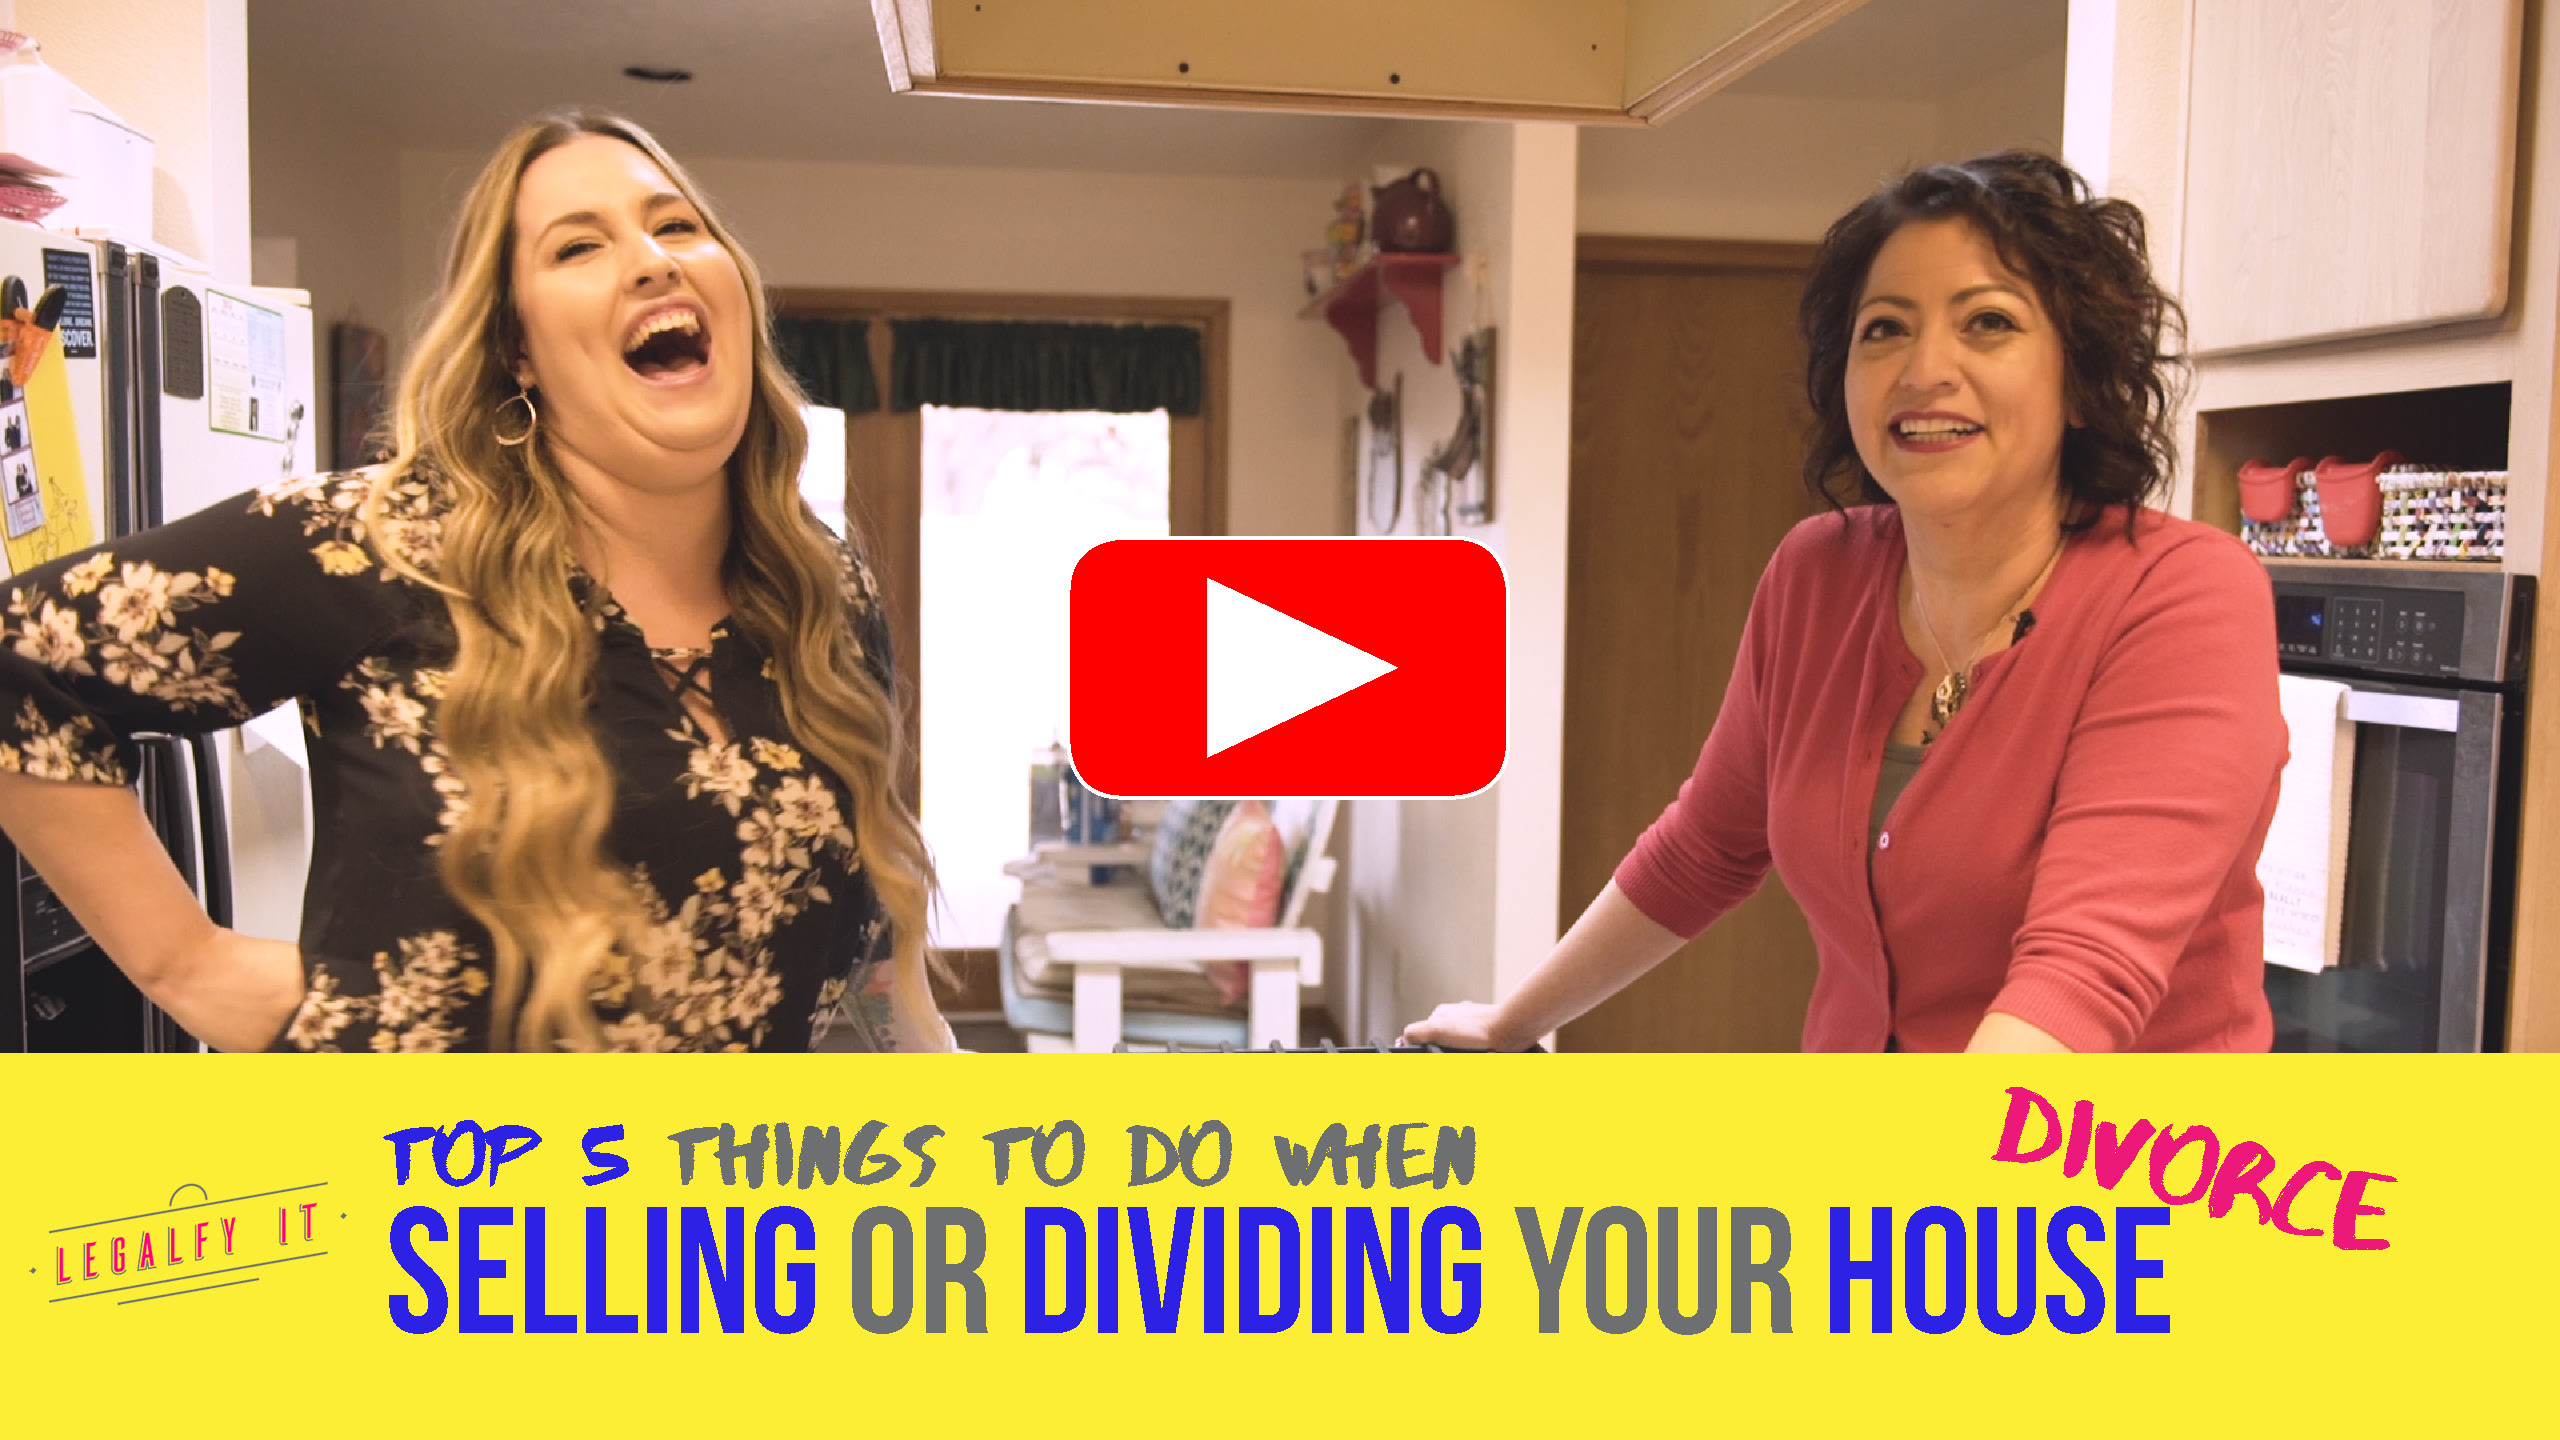 Top-5-things-to-think-about-when-selling-or-dividing-your-house-through-divorce-legalfy-it-rad5-media